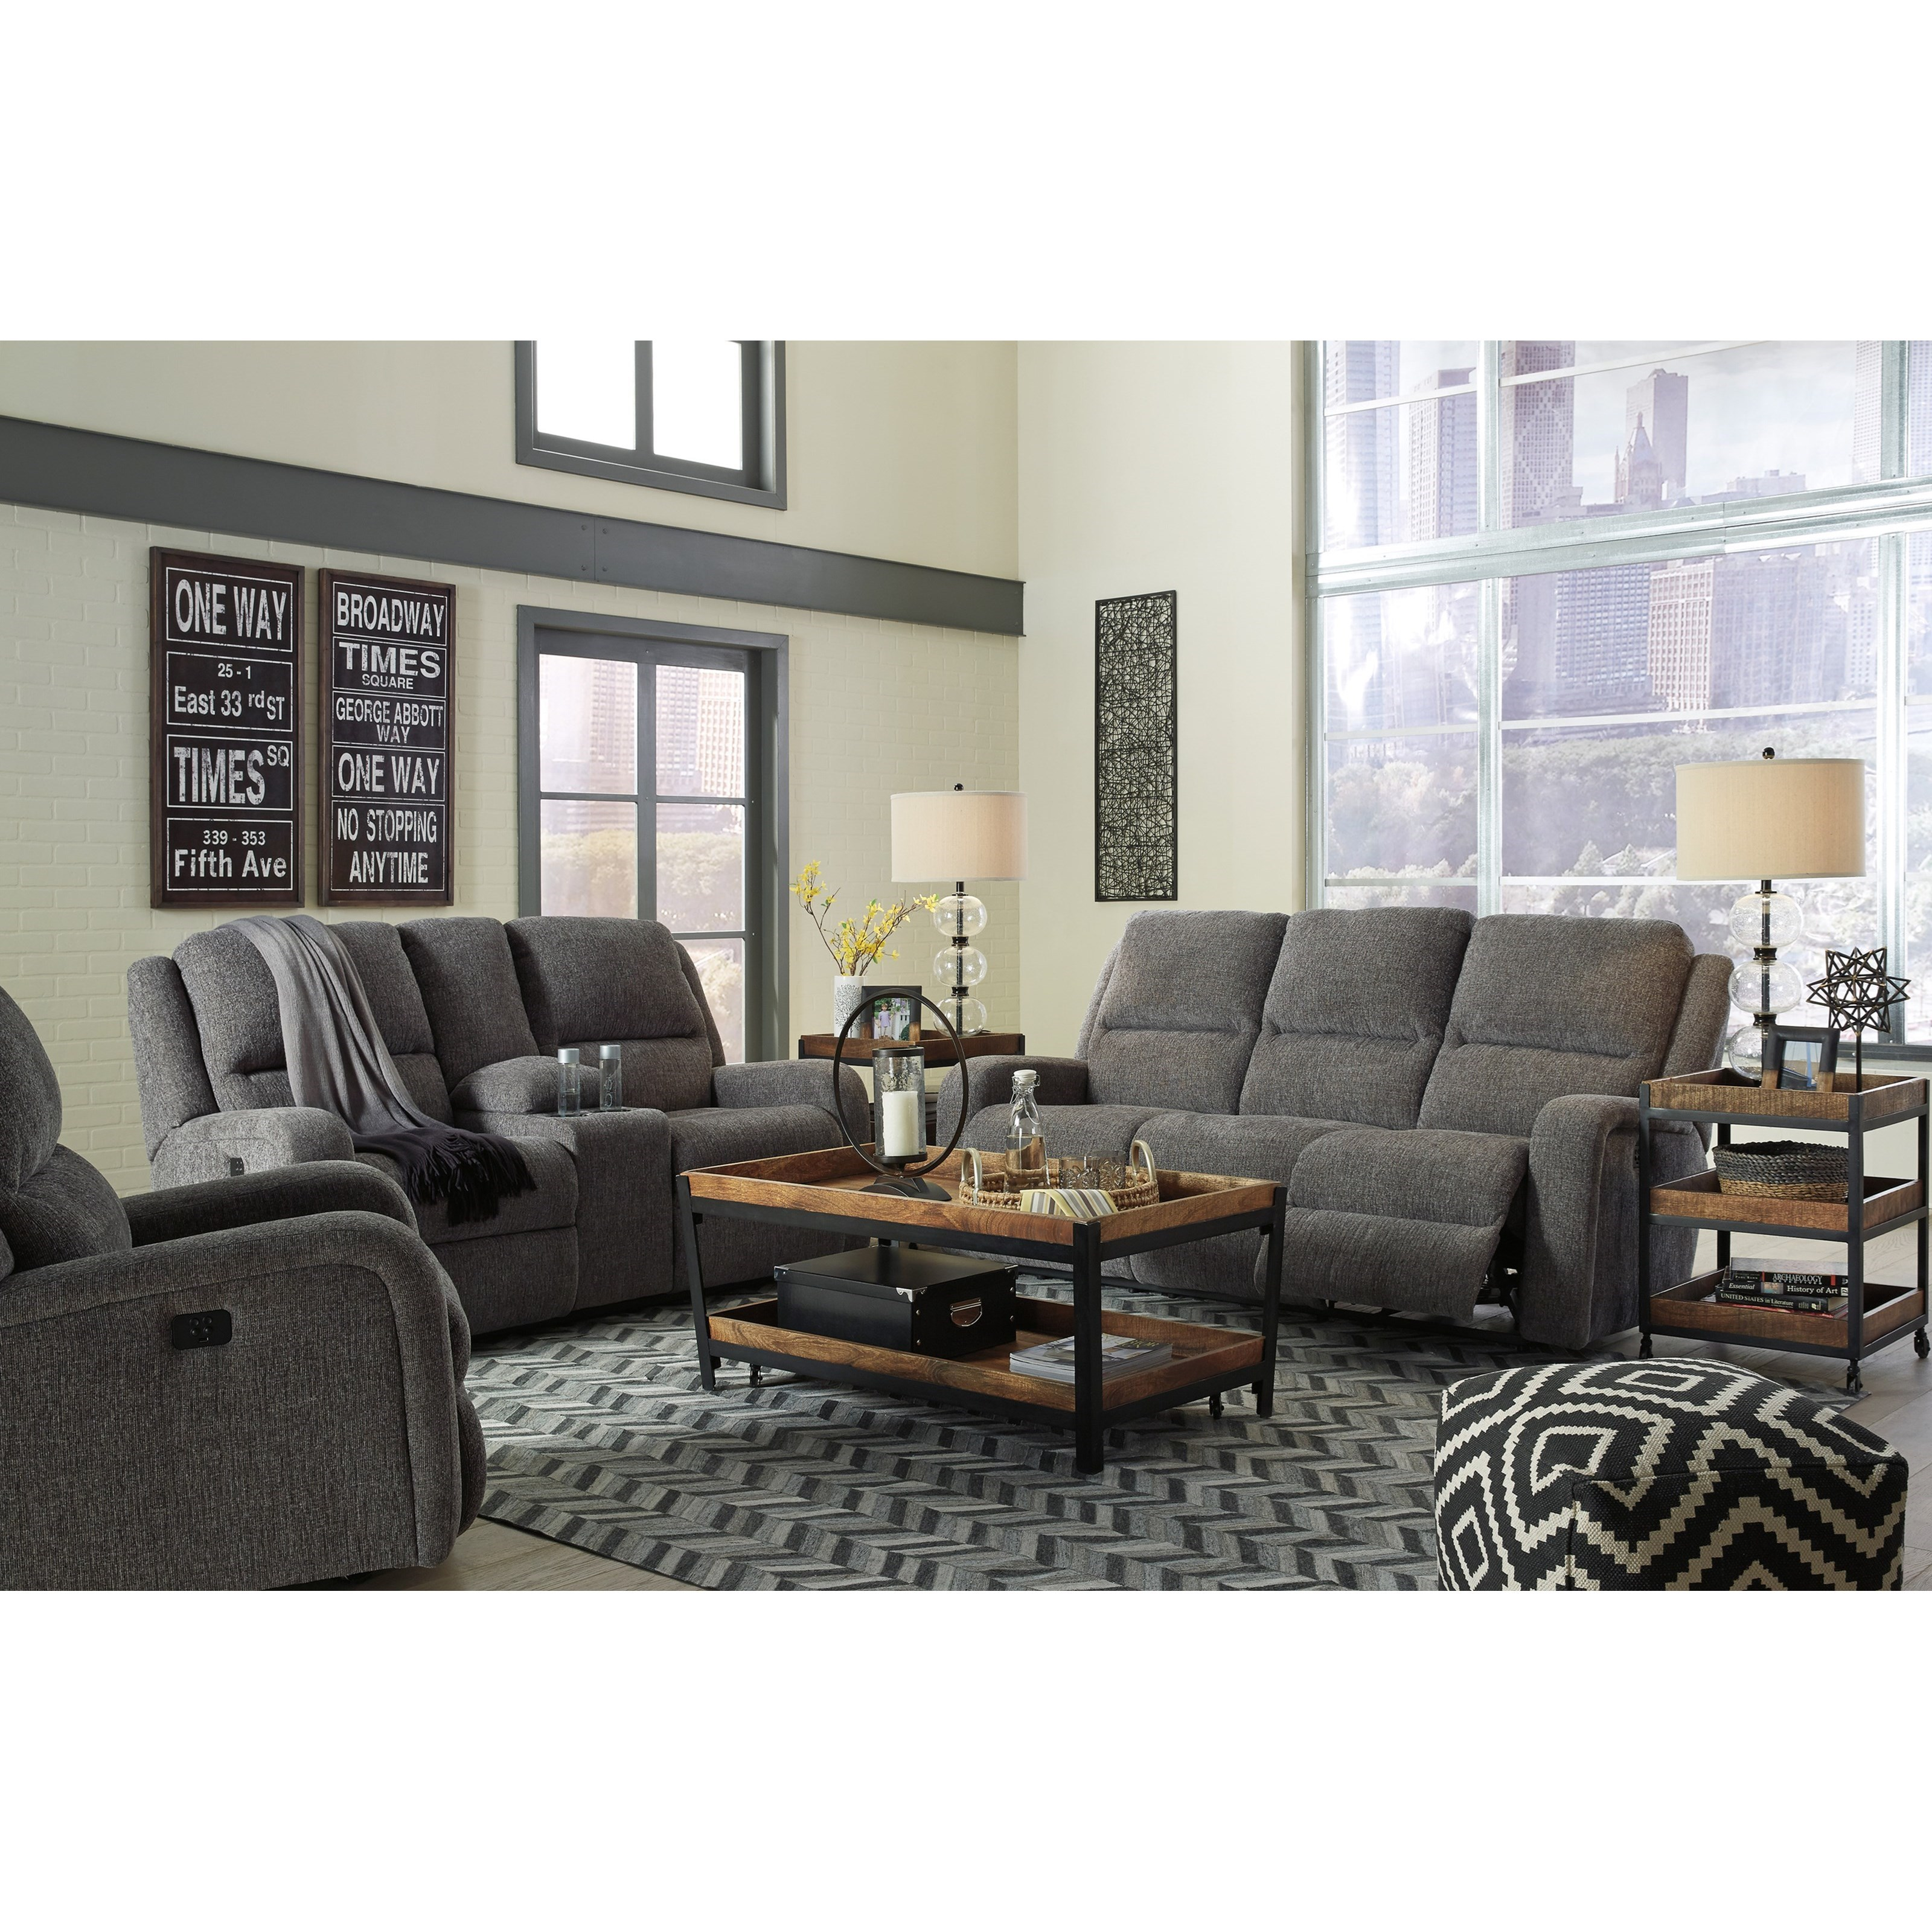 Ashley Furniture Living Room: Signature Design By Ashley Krismen Reclining Living Room